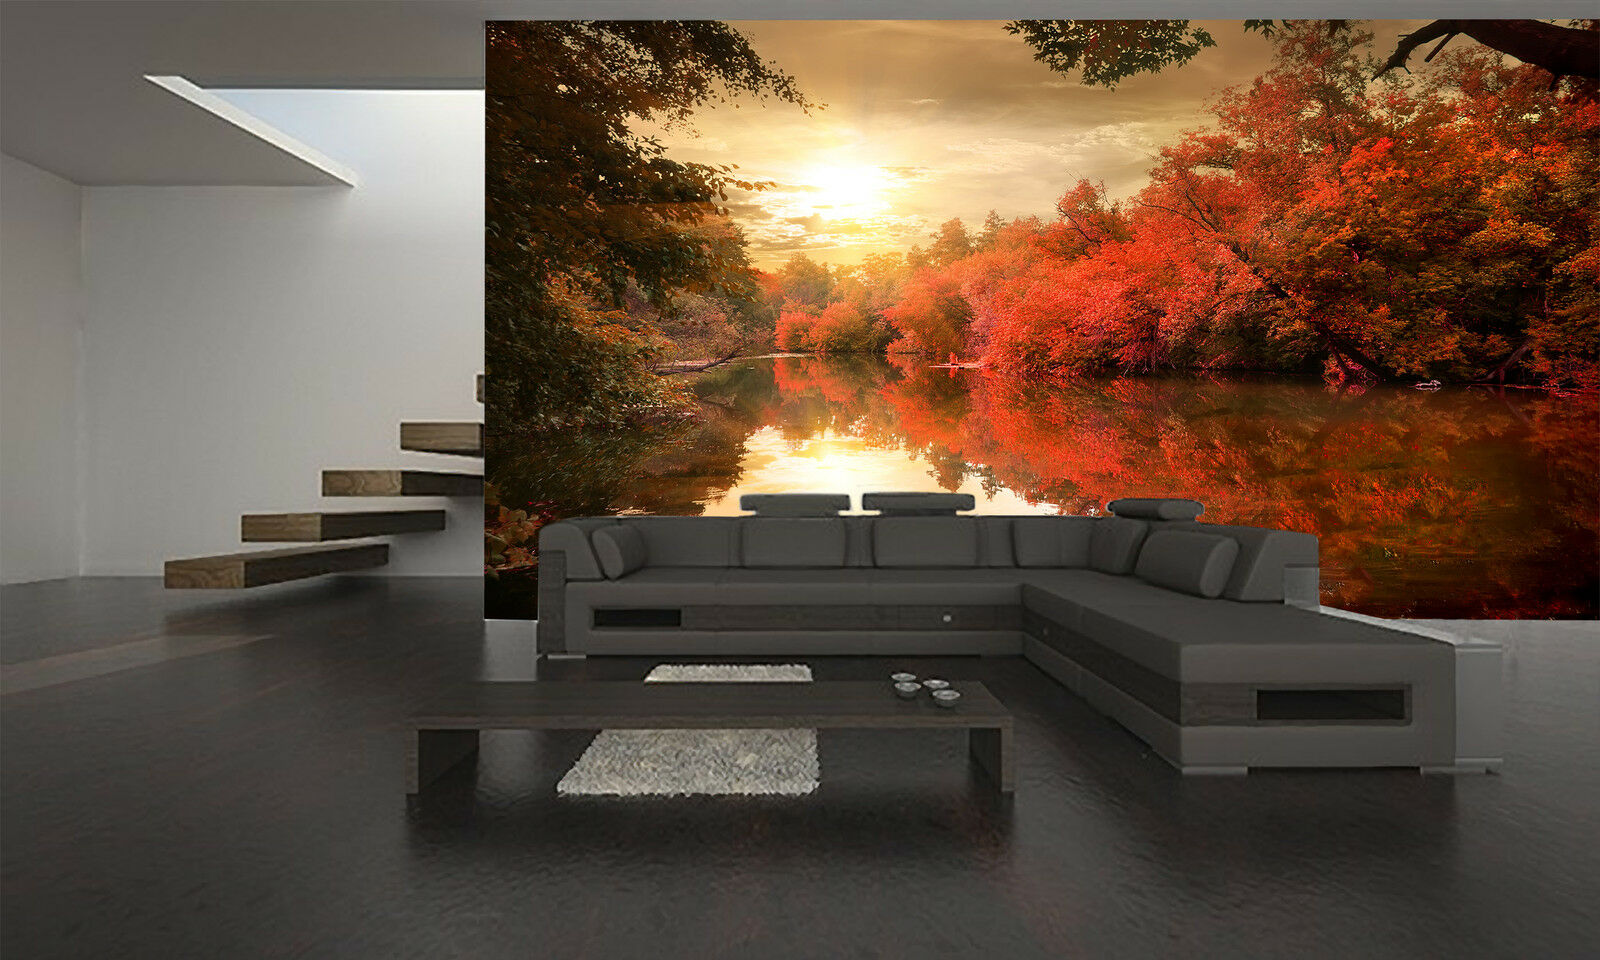 Autumn Sunset Over River Wall Mural Photo Wallpaper GIANT DECOR Paper Poster